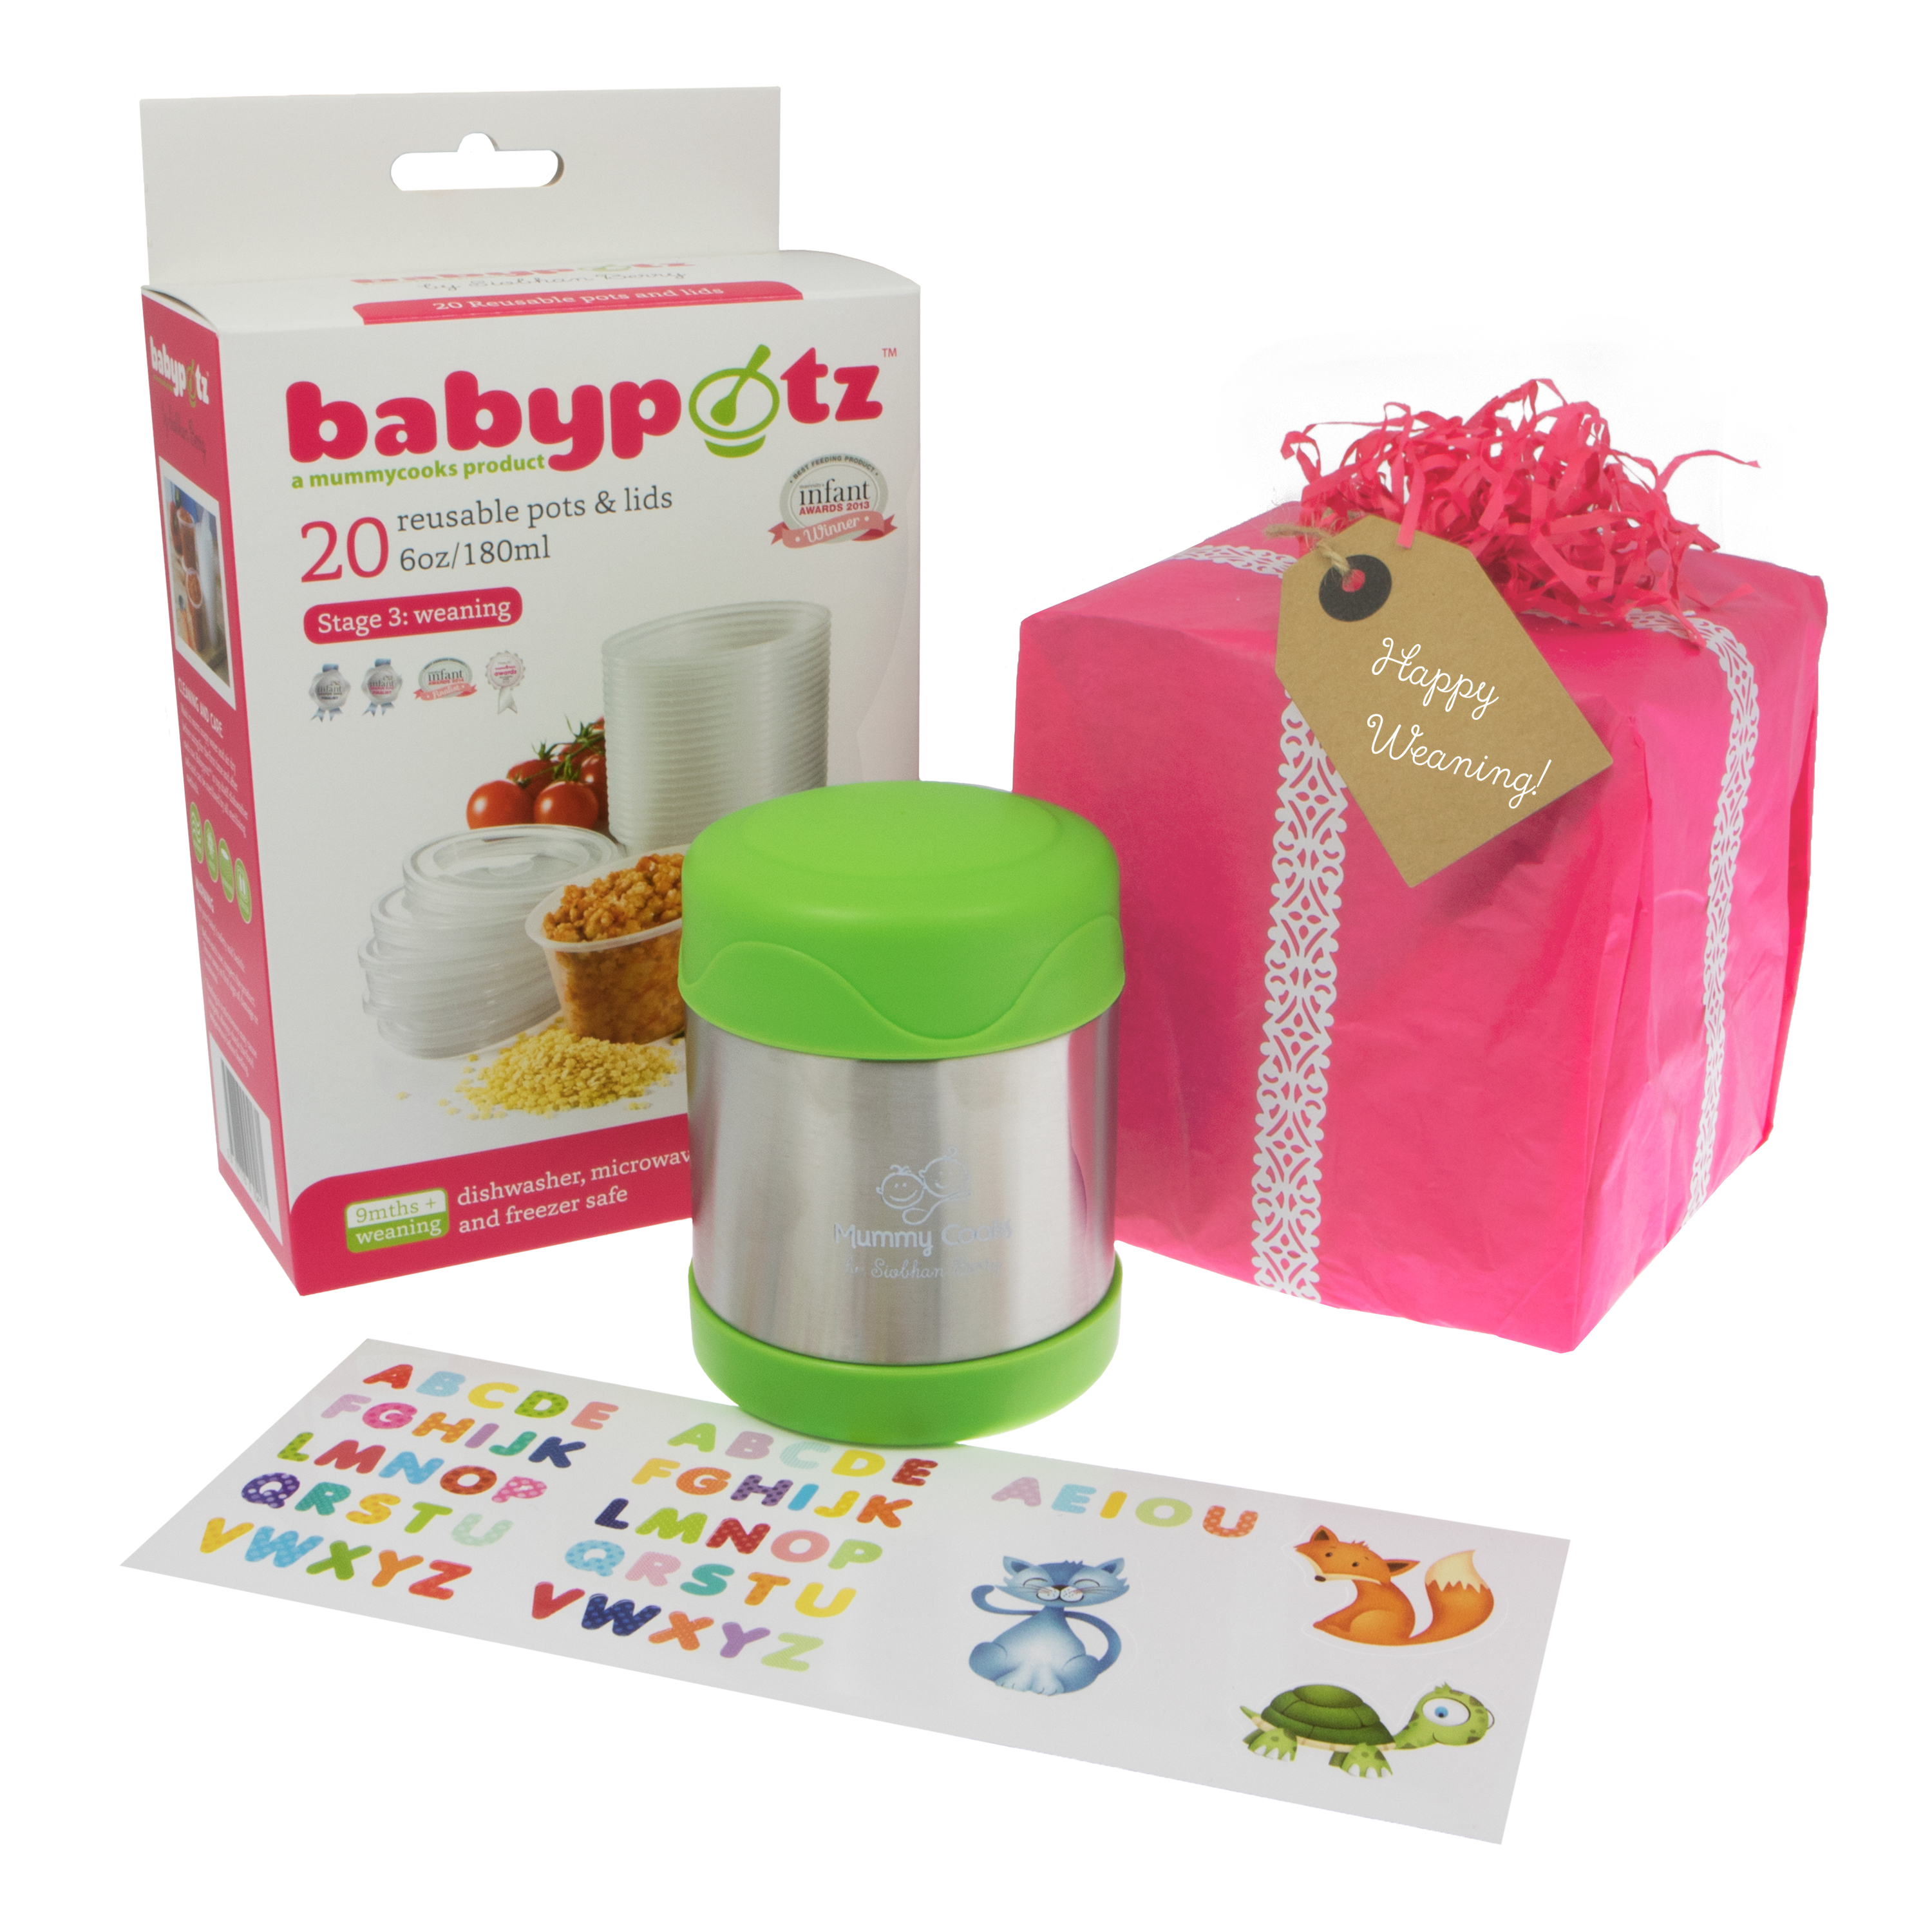 9months+ Weaning Gift Set